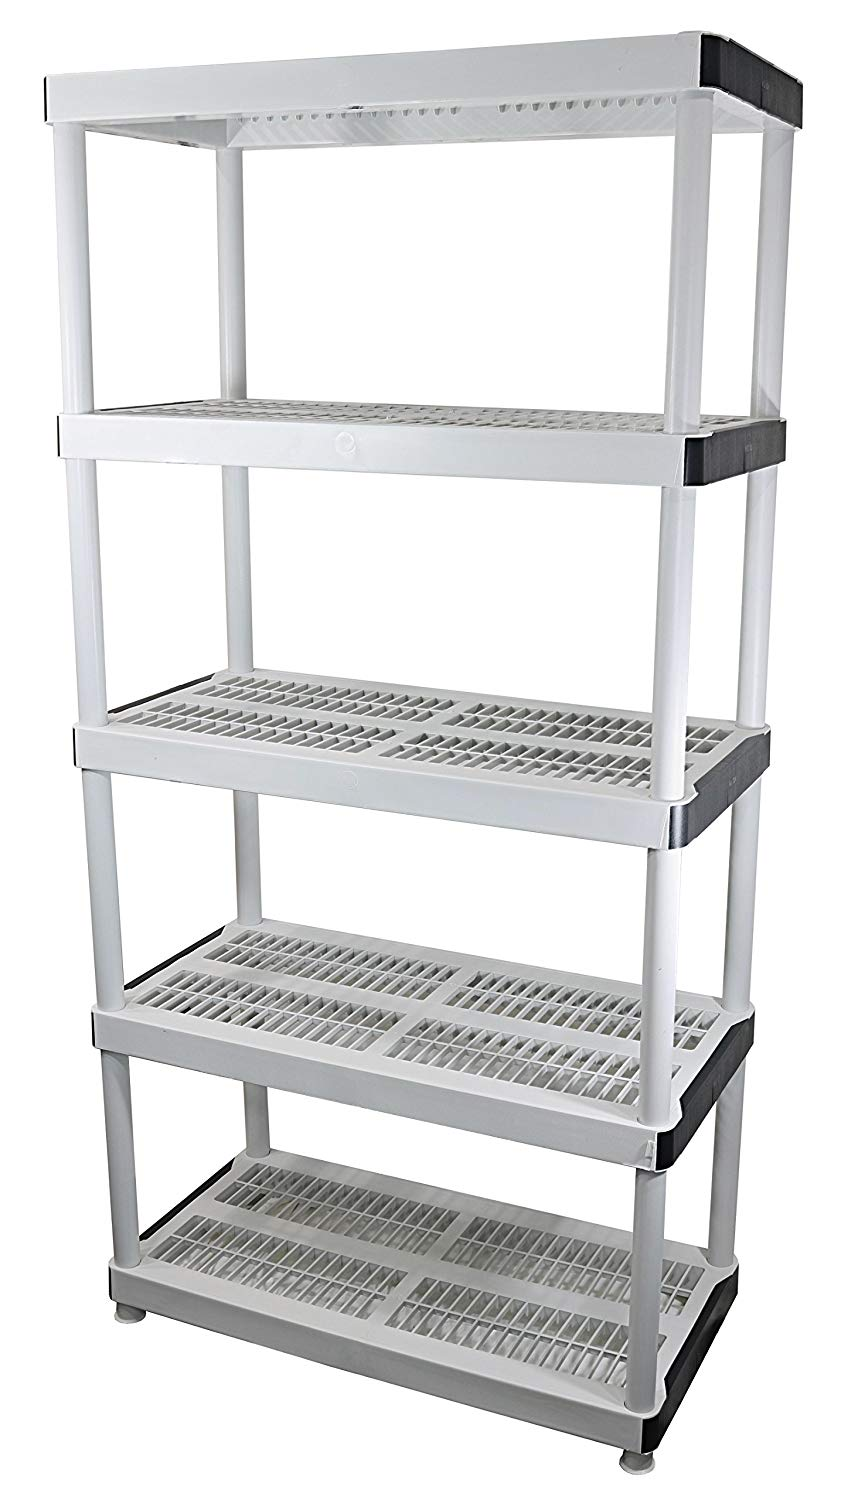 HDX 36 BY 72 5-TIERED Ventilated Plastic Storage Shelving